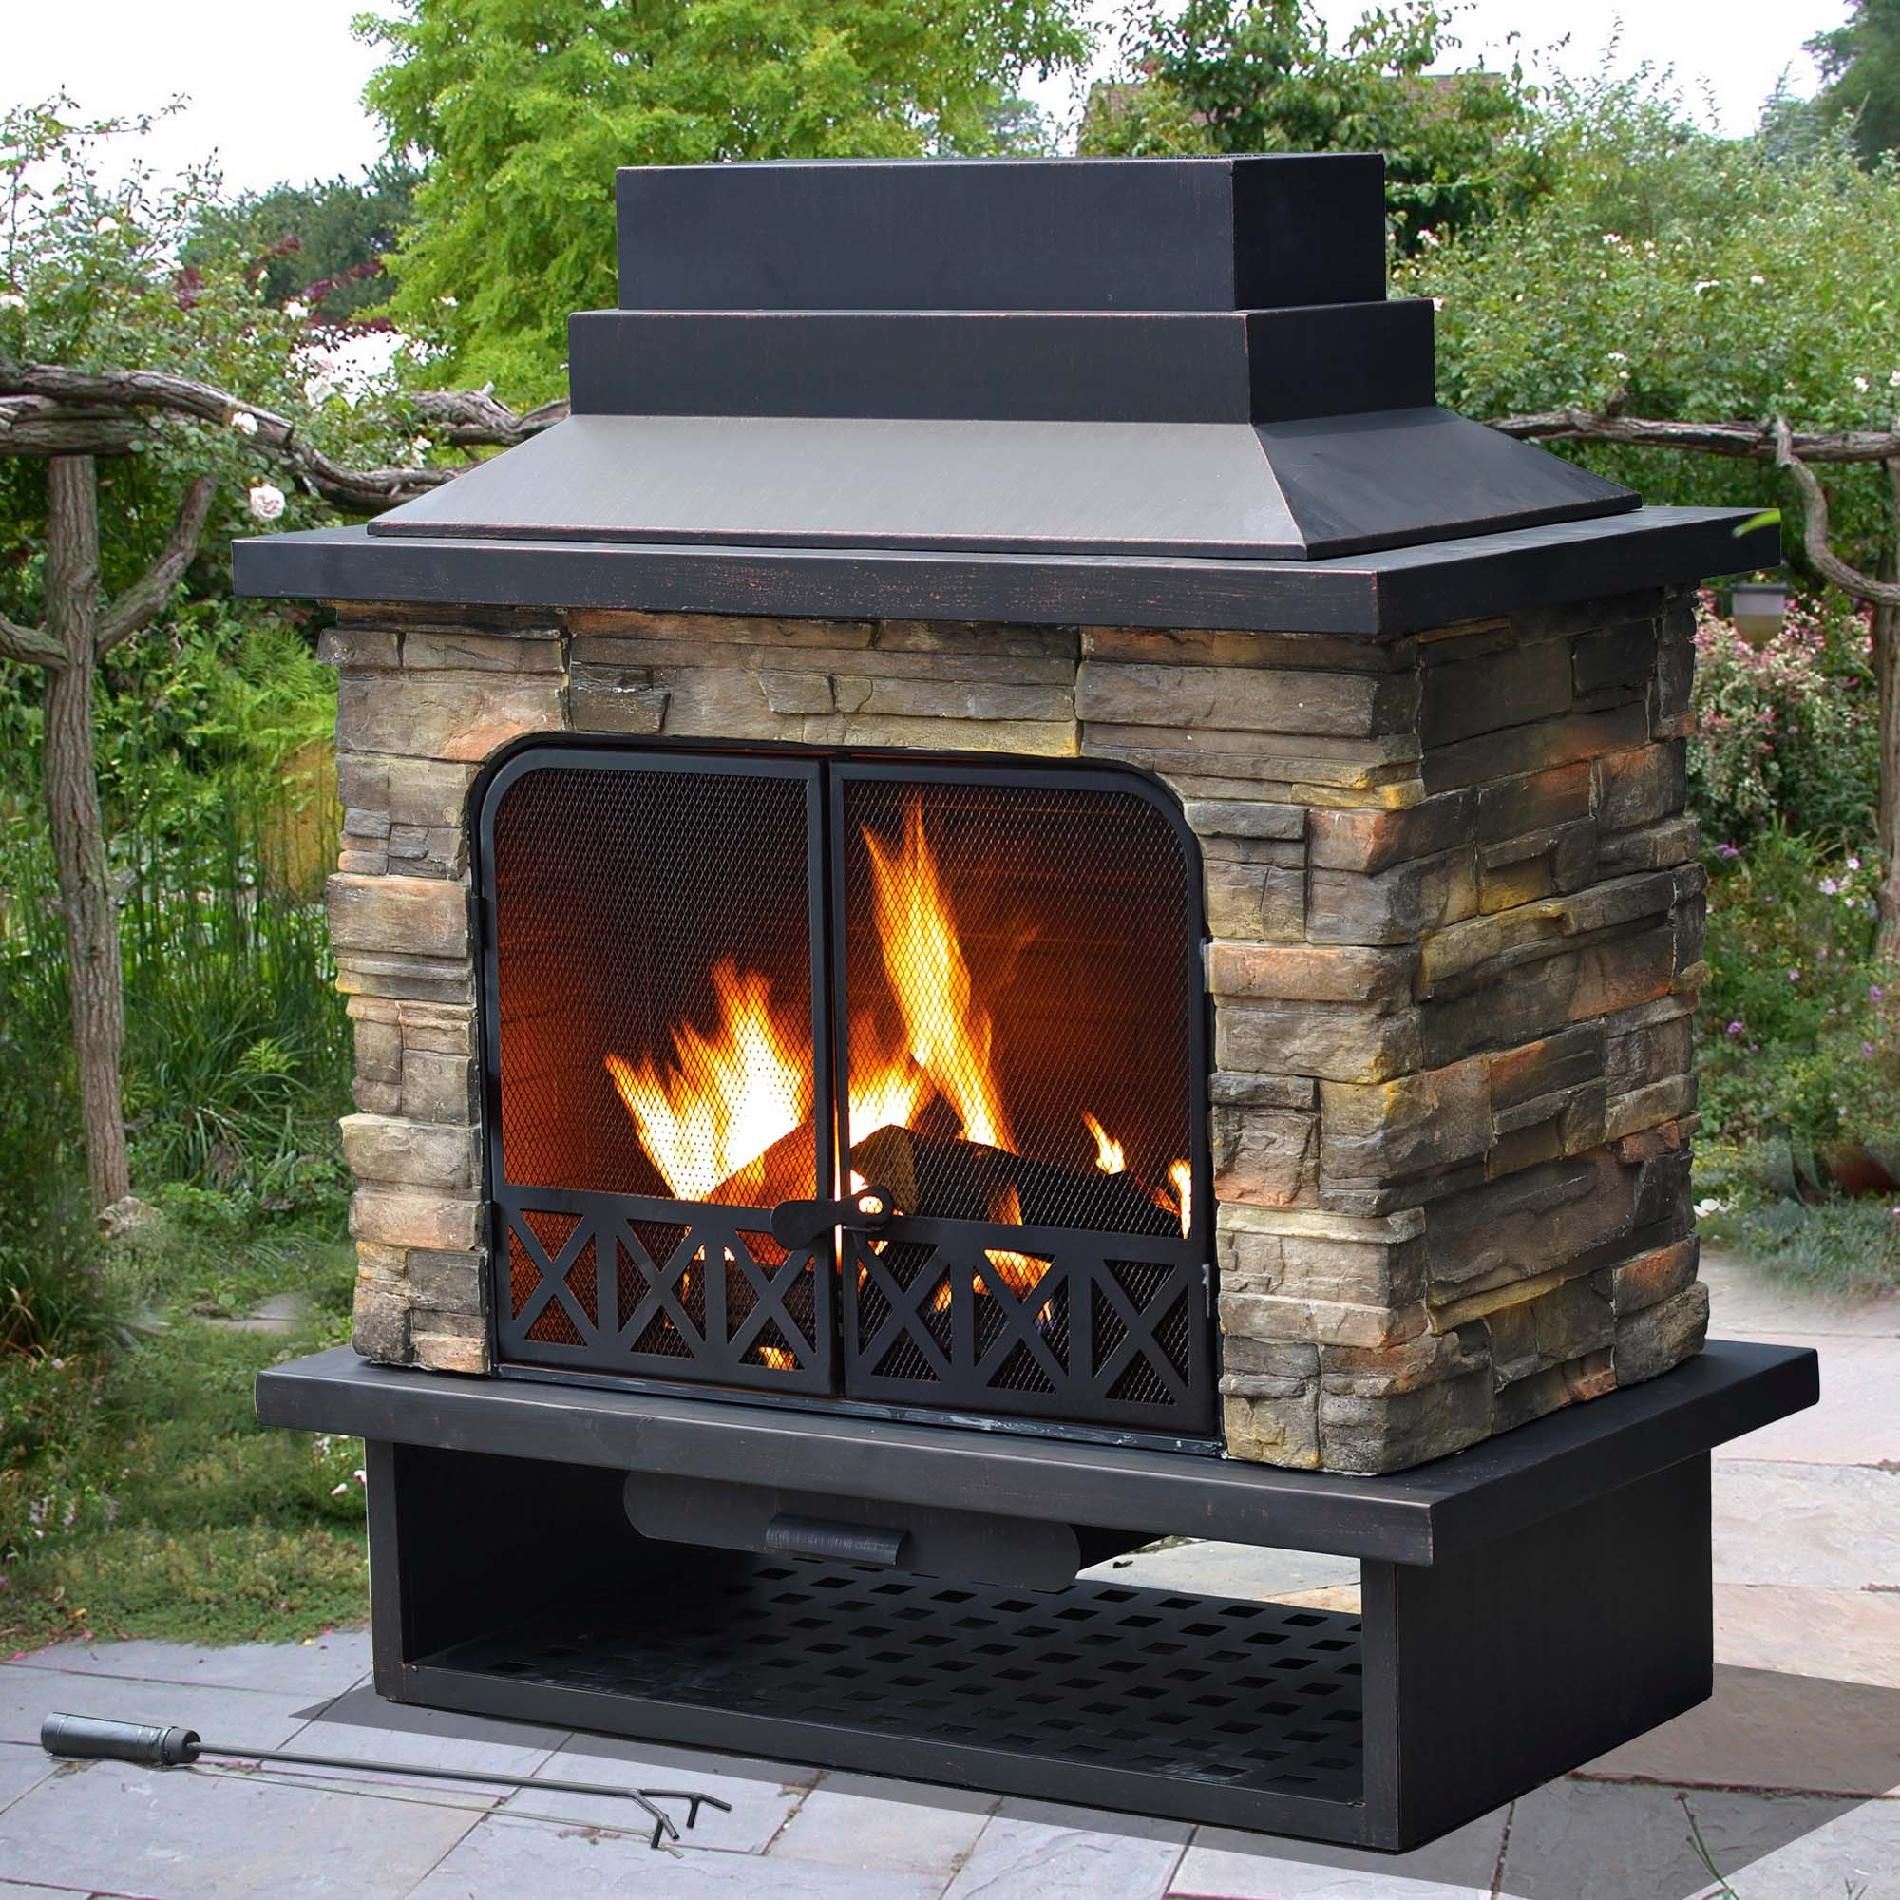 Glowing Outdoor Fireplace Ideas: Bring The Glow And Warmth Of A Natural Log Fire To Your